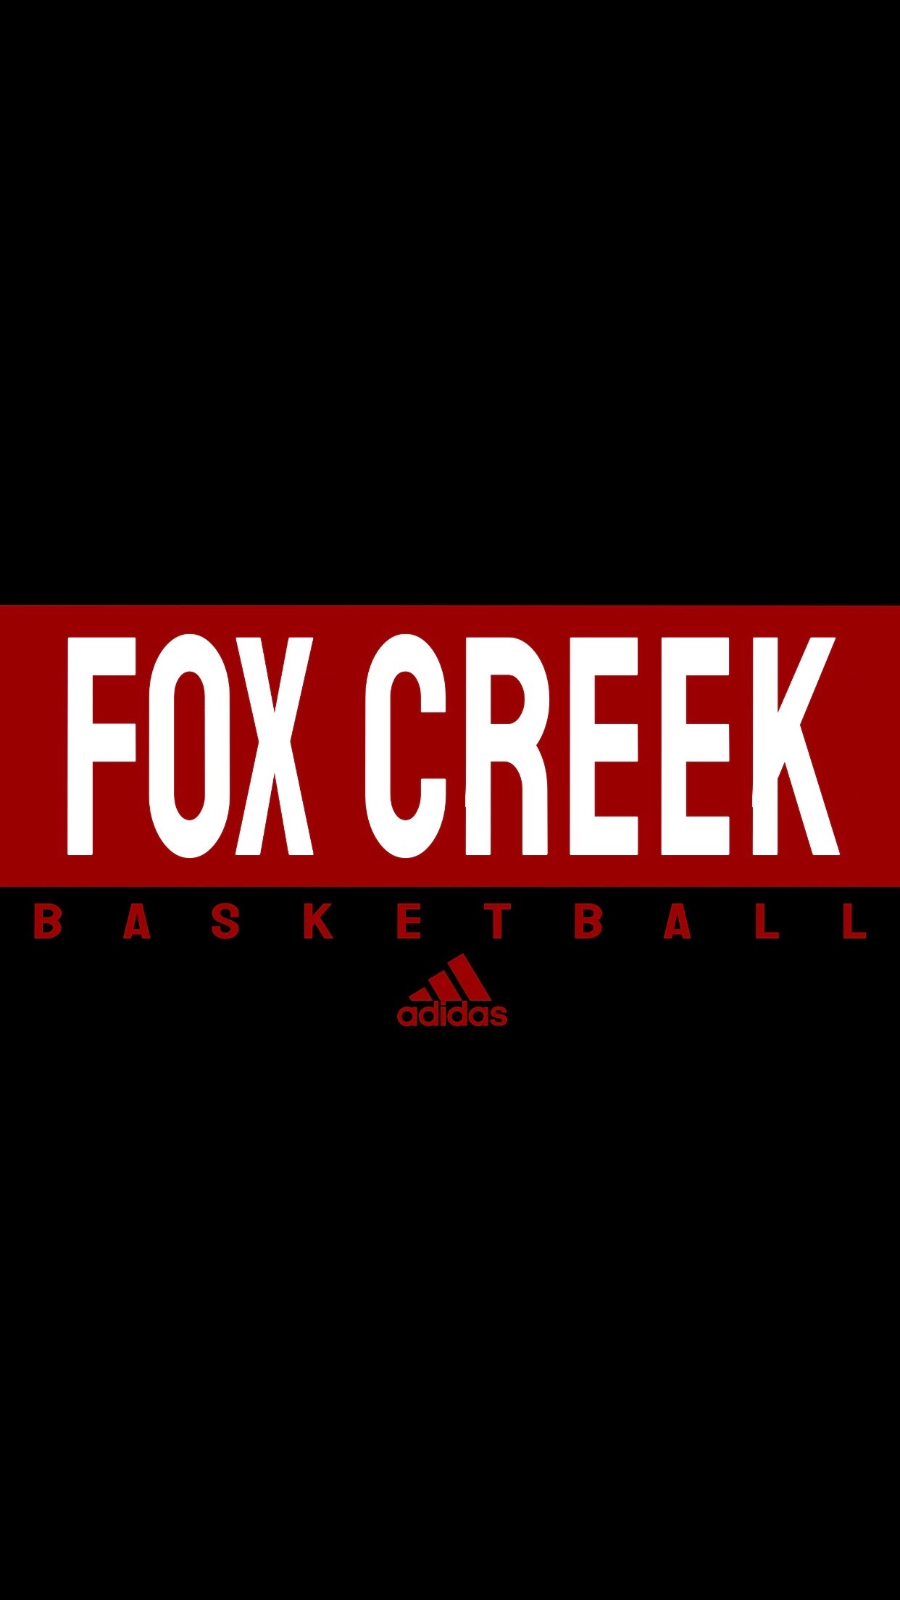 Fox Creek Basketball Awarded All-Region Selections To Go Along With State Playoff Berths